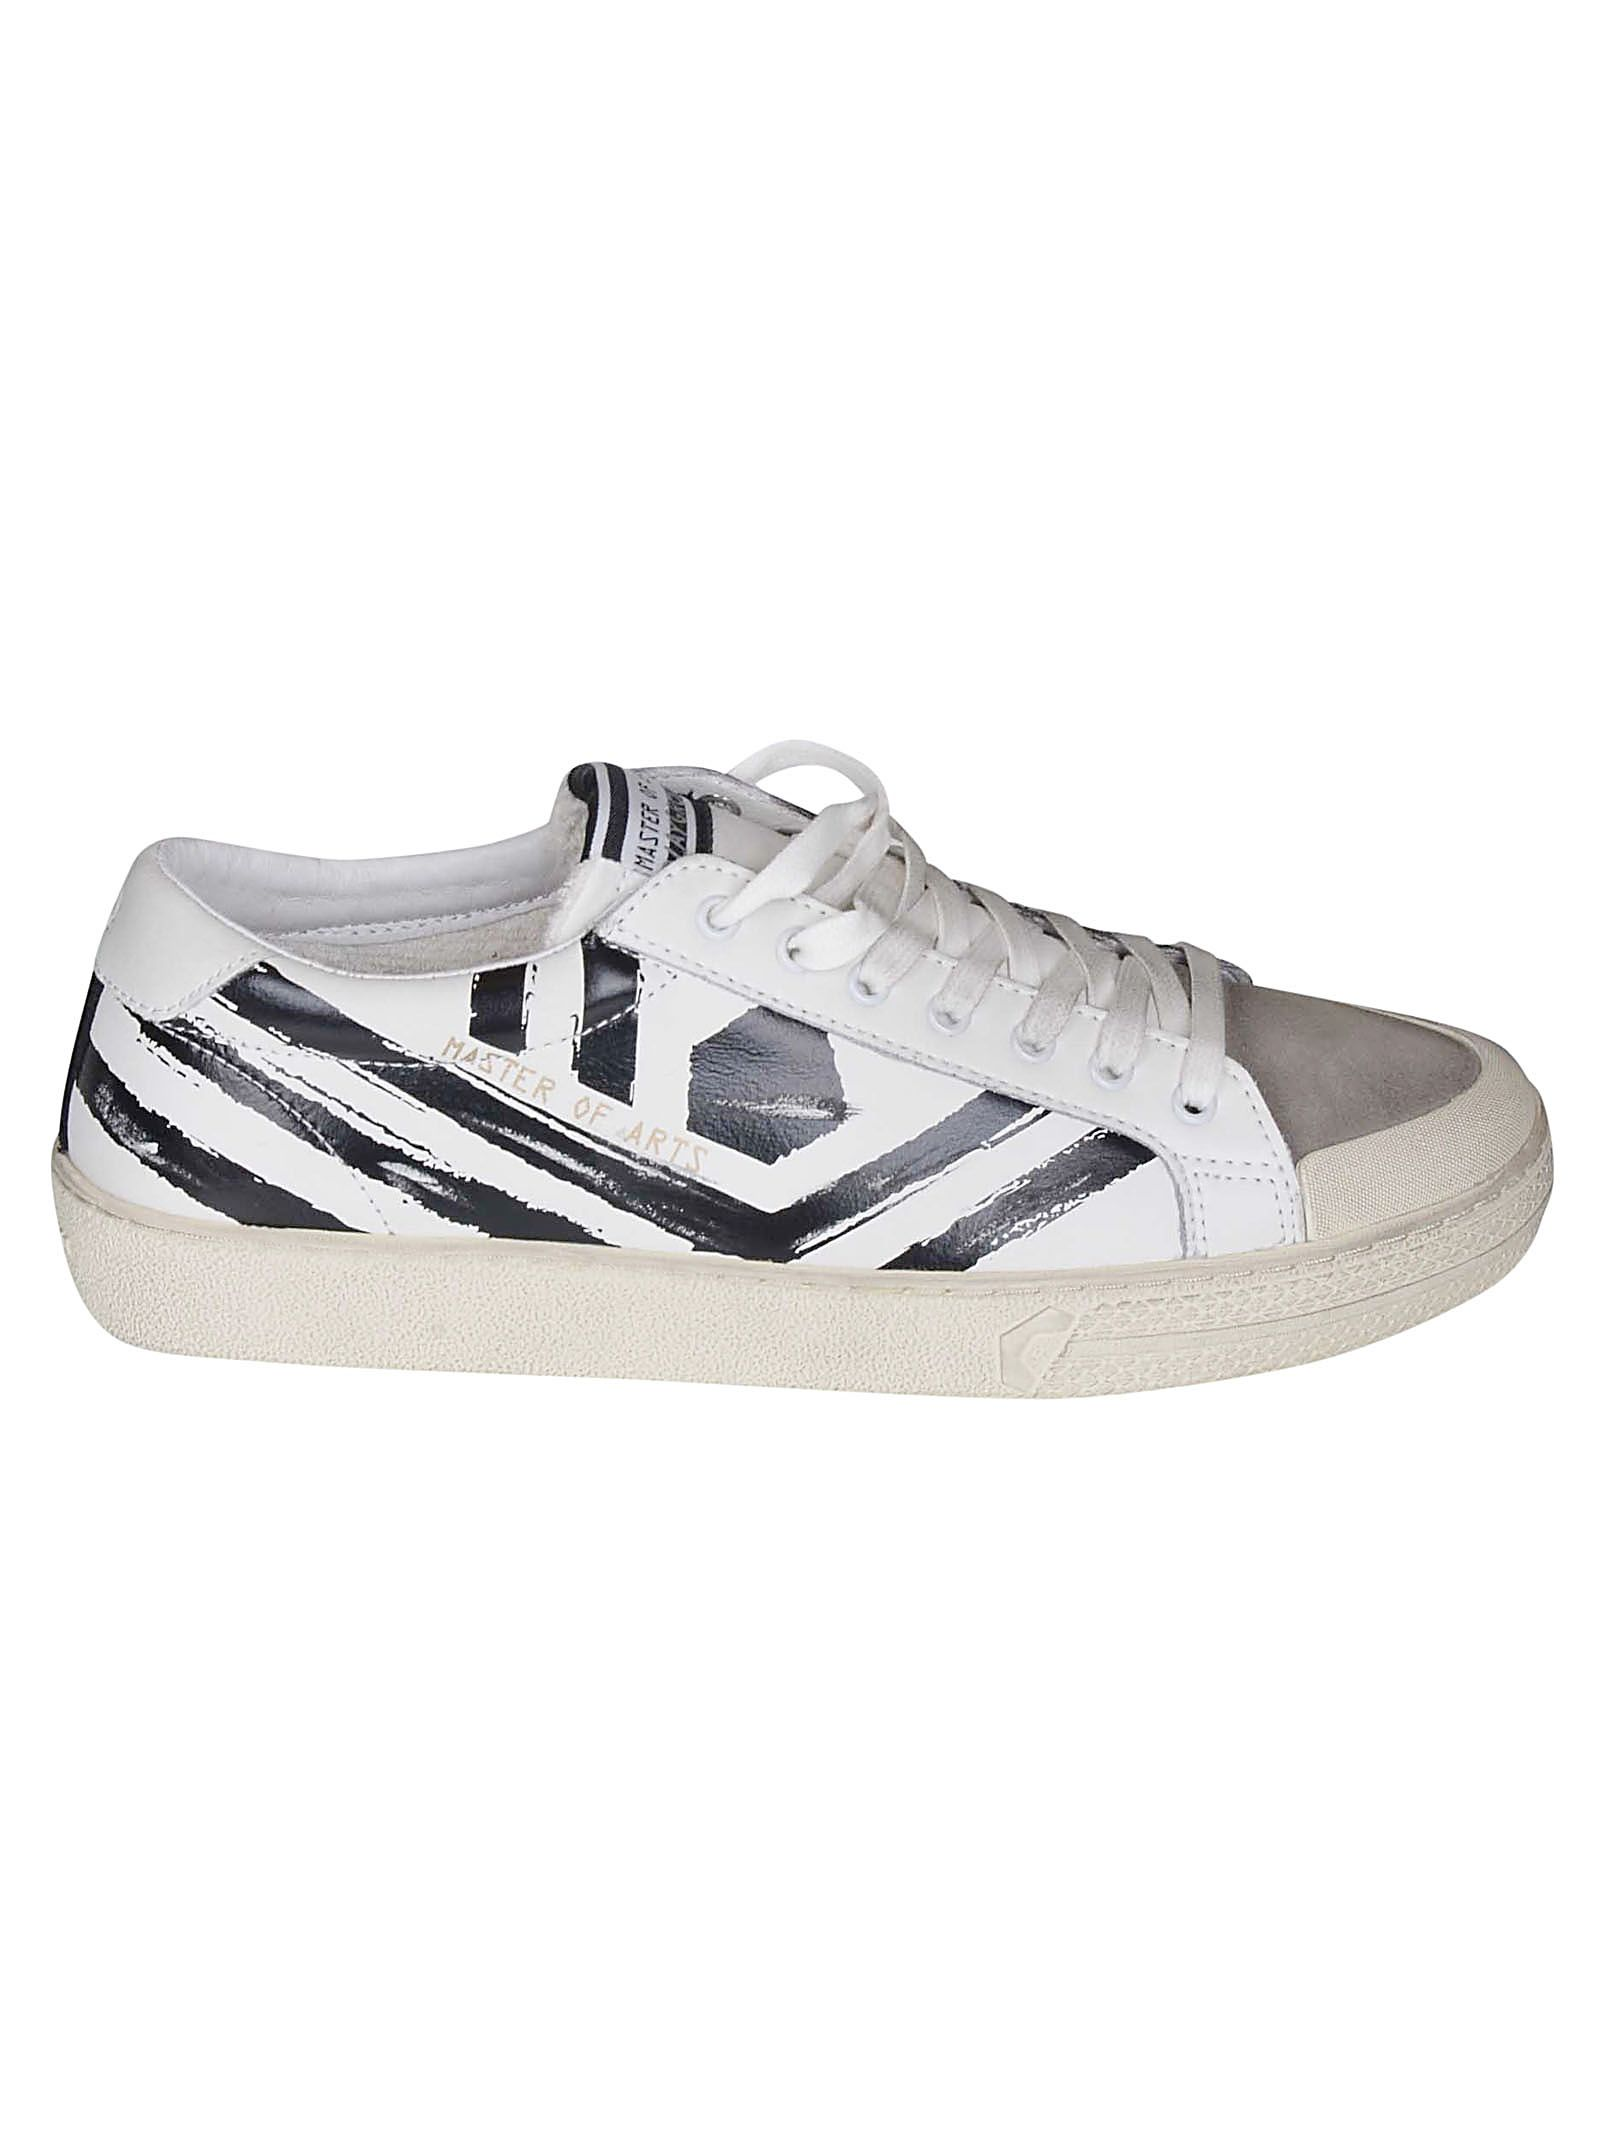 M.O.A. MASTER OF ARTS M.O.A. KIT PLAYGROUND STRIPED LOW-TOP SNEAKERS